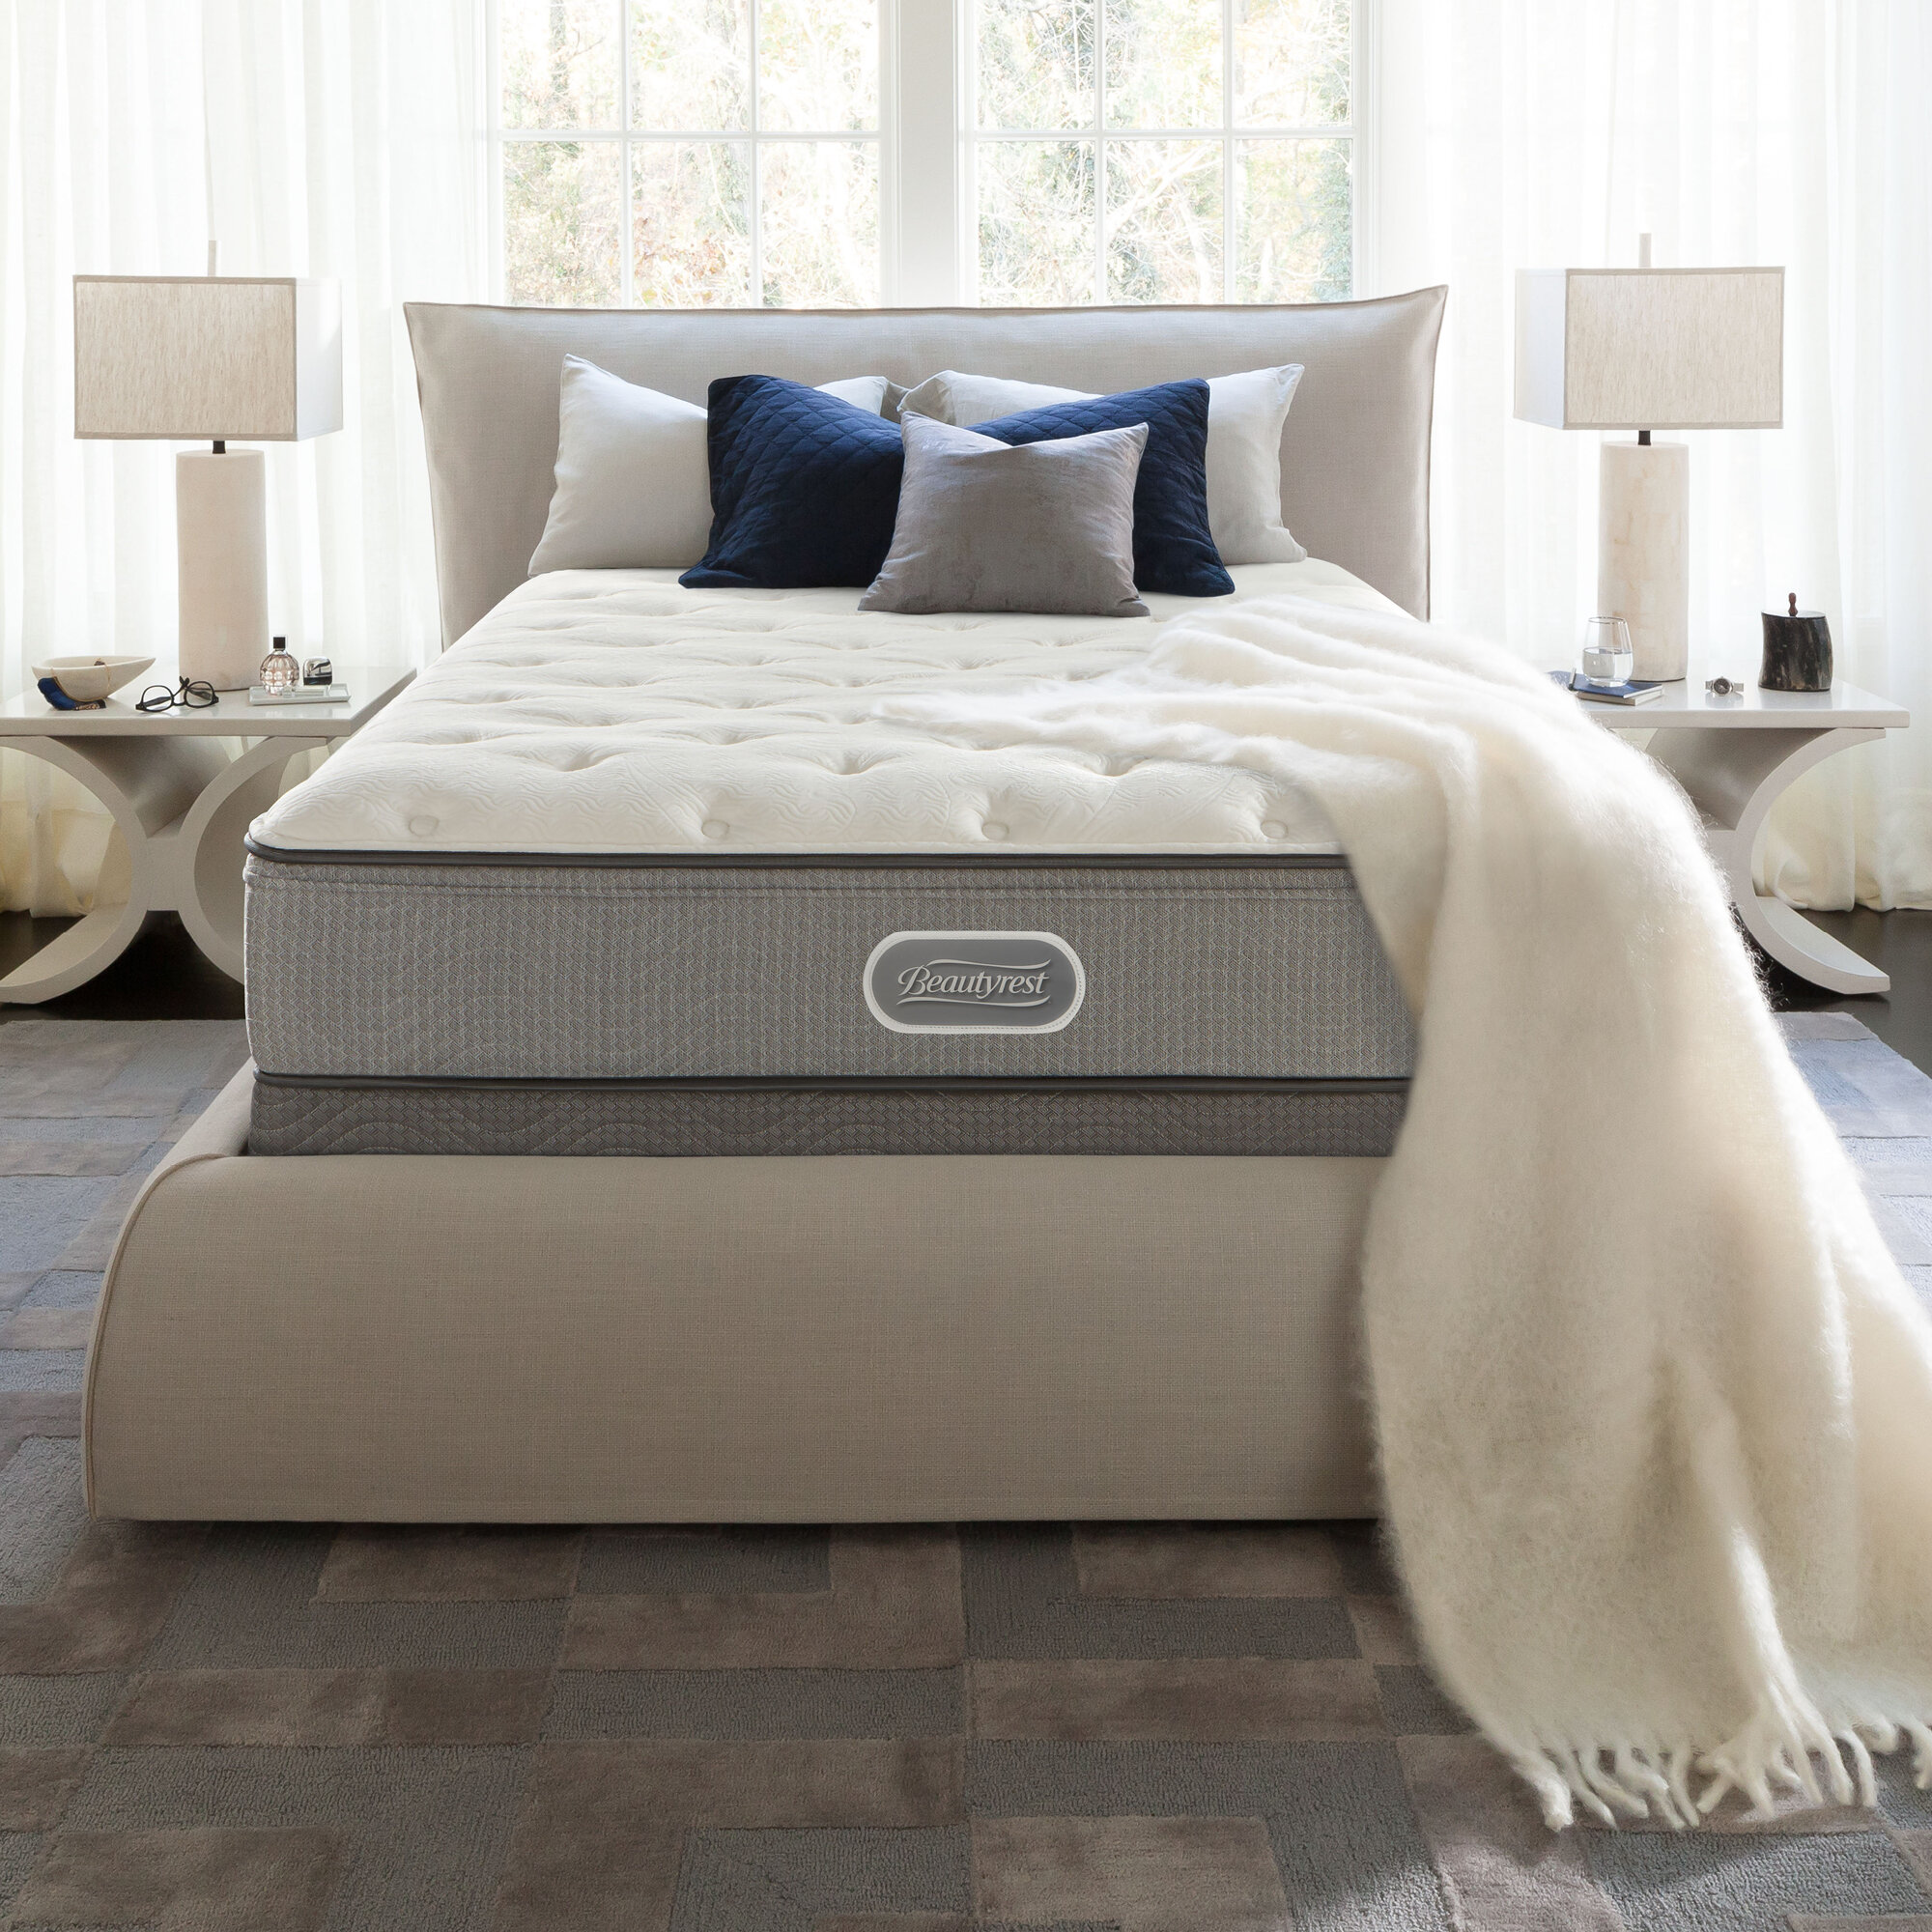 affordable twin set double memory mattresses price discount king foam best pad types for box pillow novaform inch mattress or new serta very and latex sale topper size cheap delivery gel of queen frame spring cover top